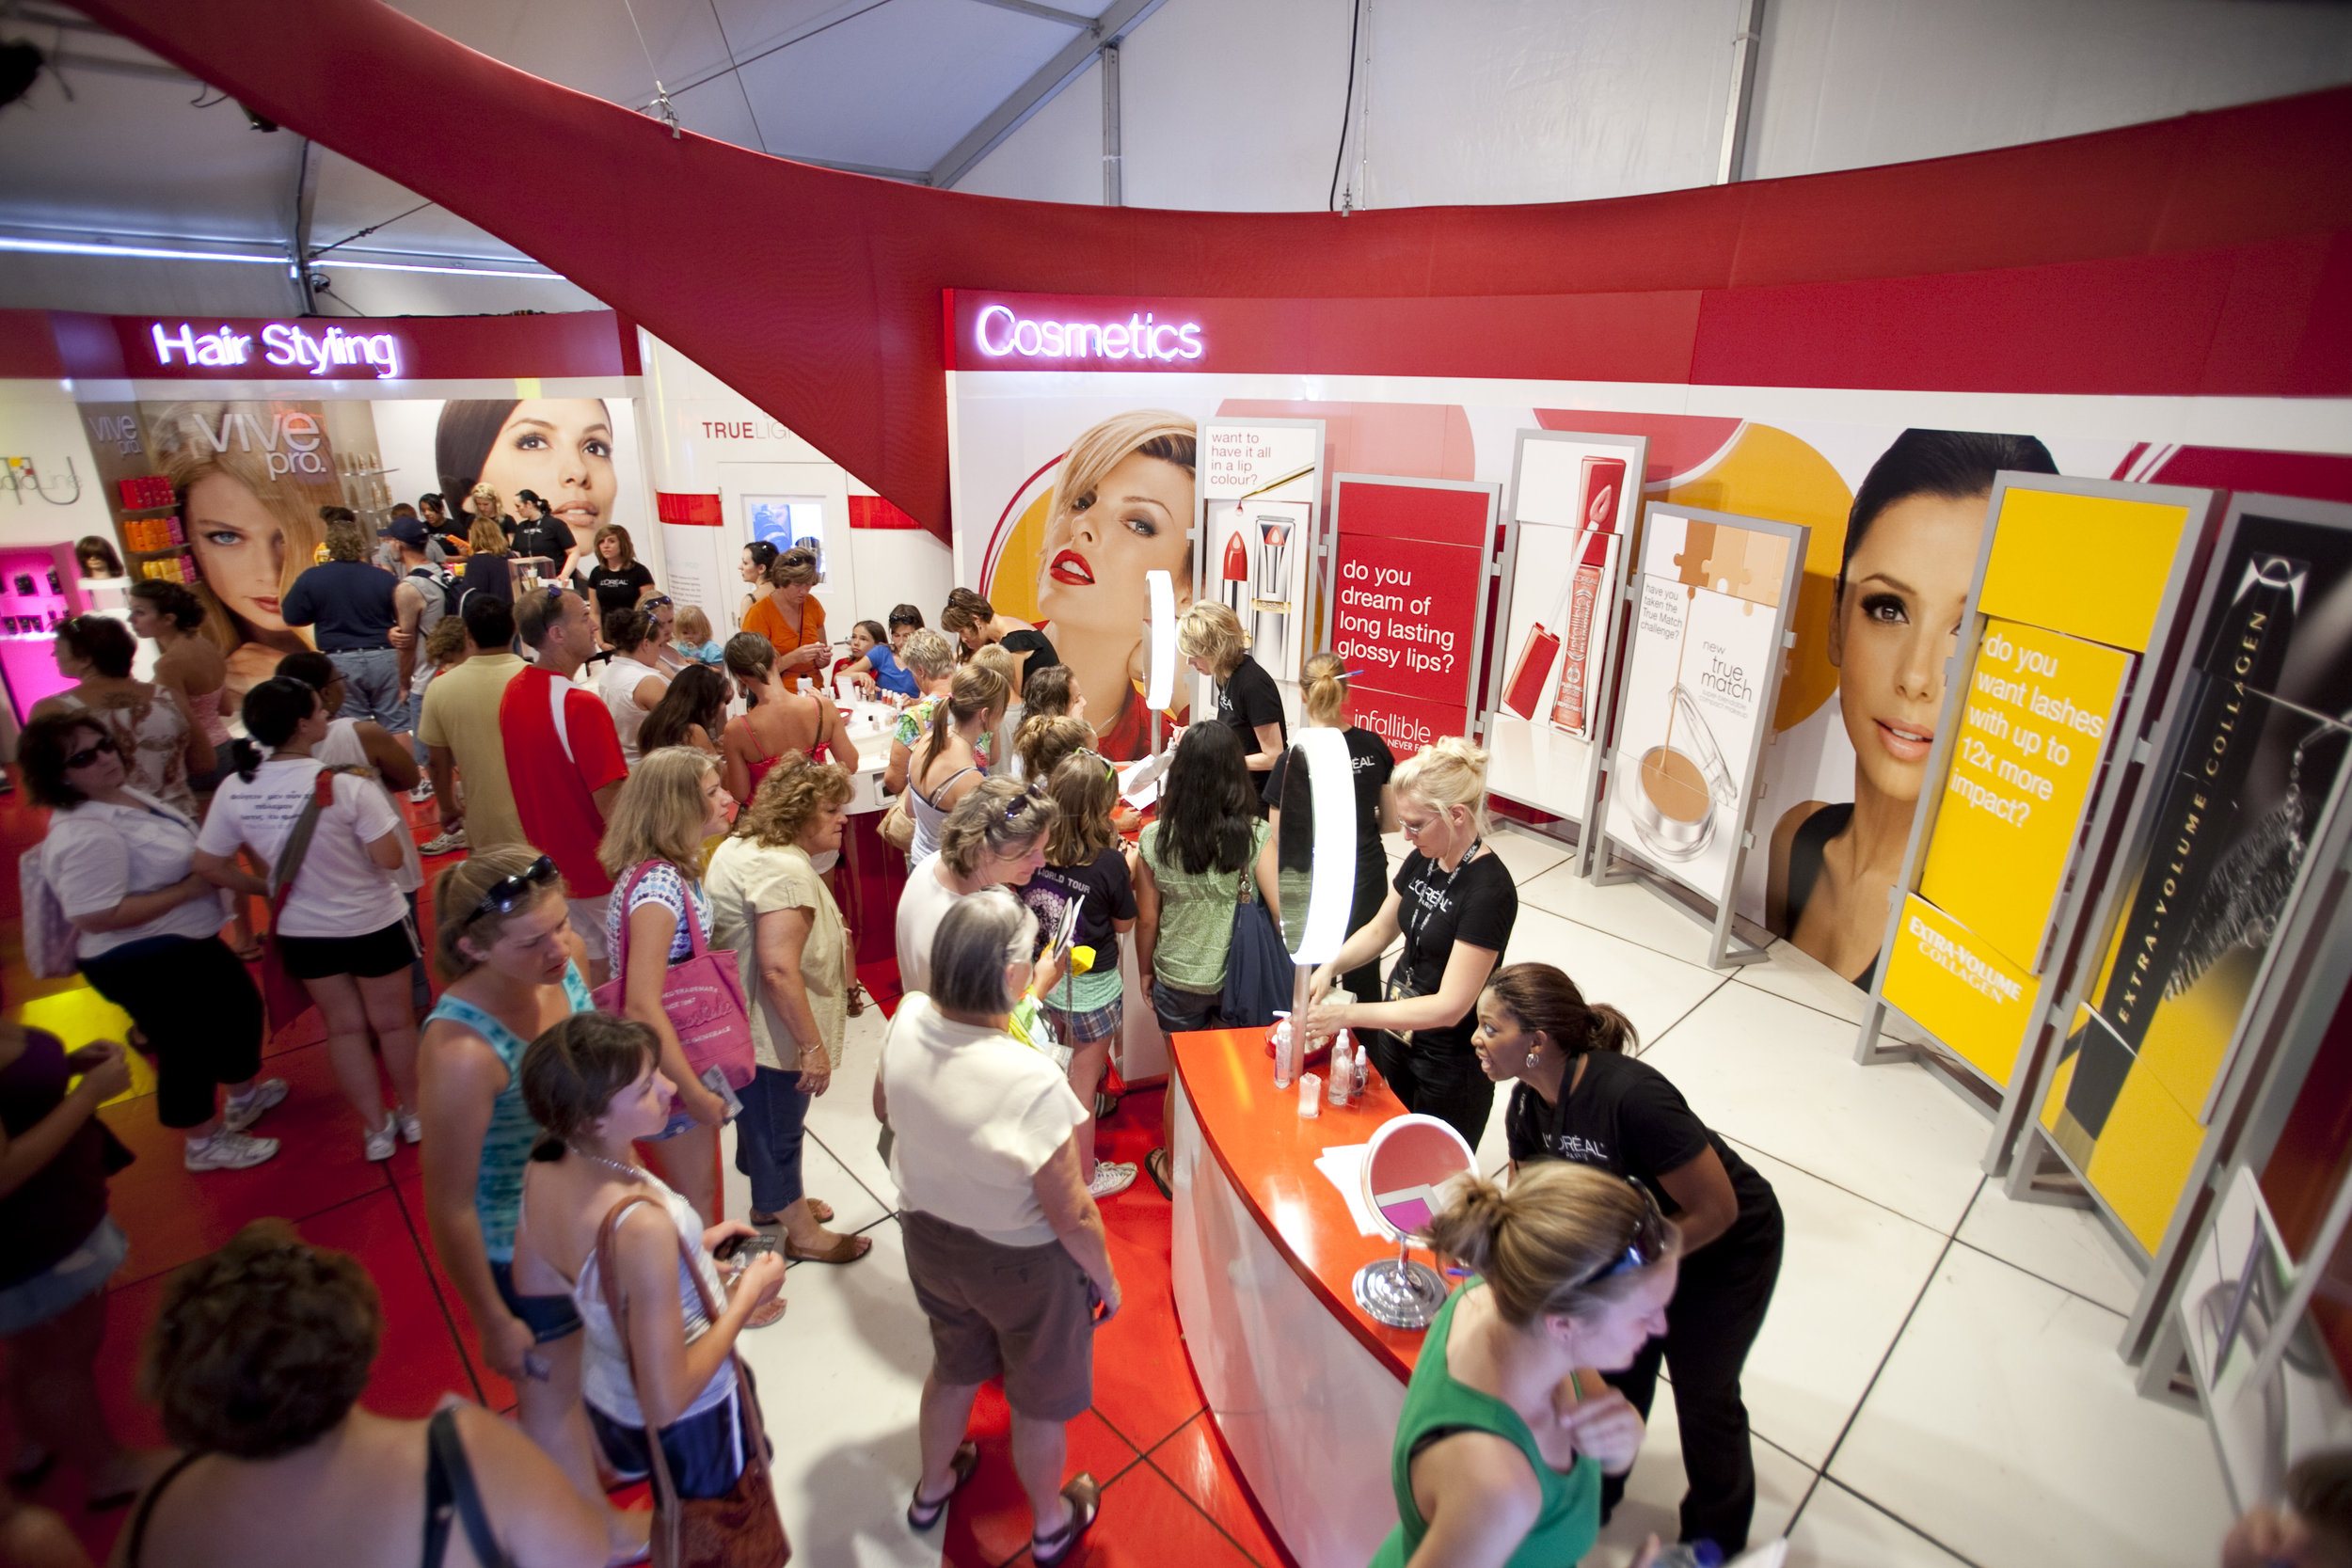 Cosmetics Wall - crowded.jpg